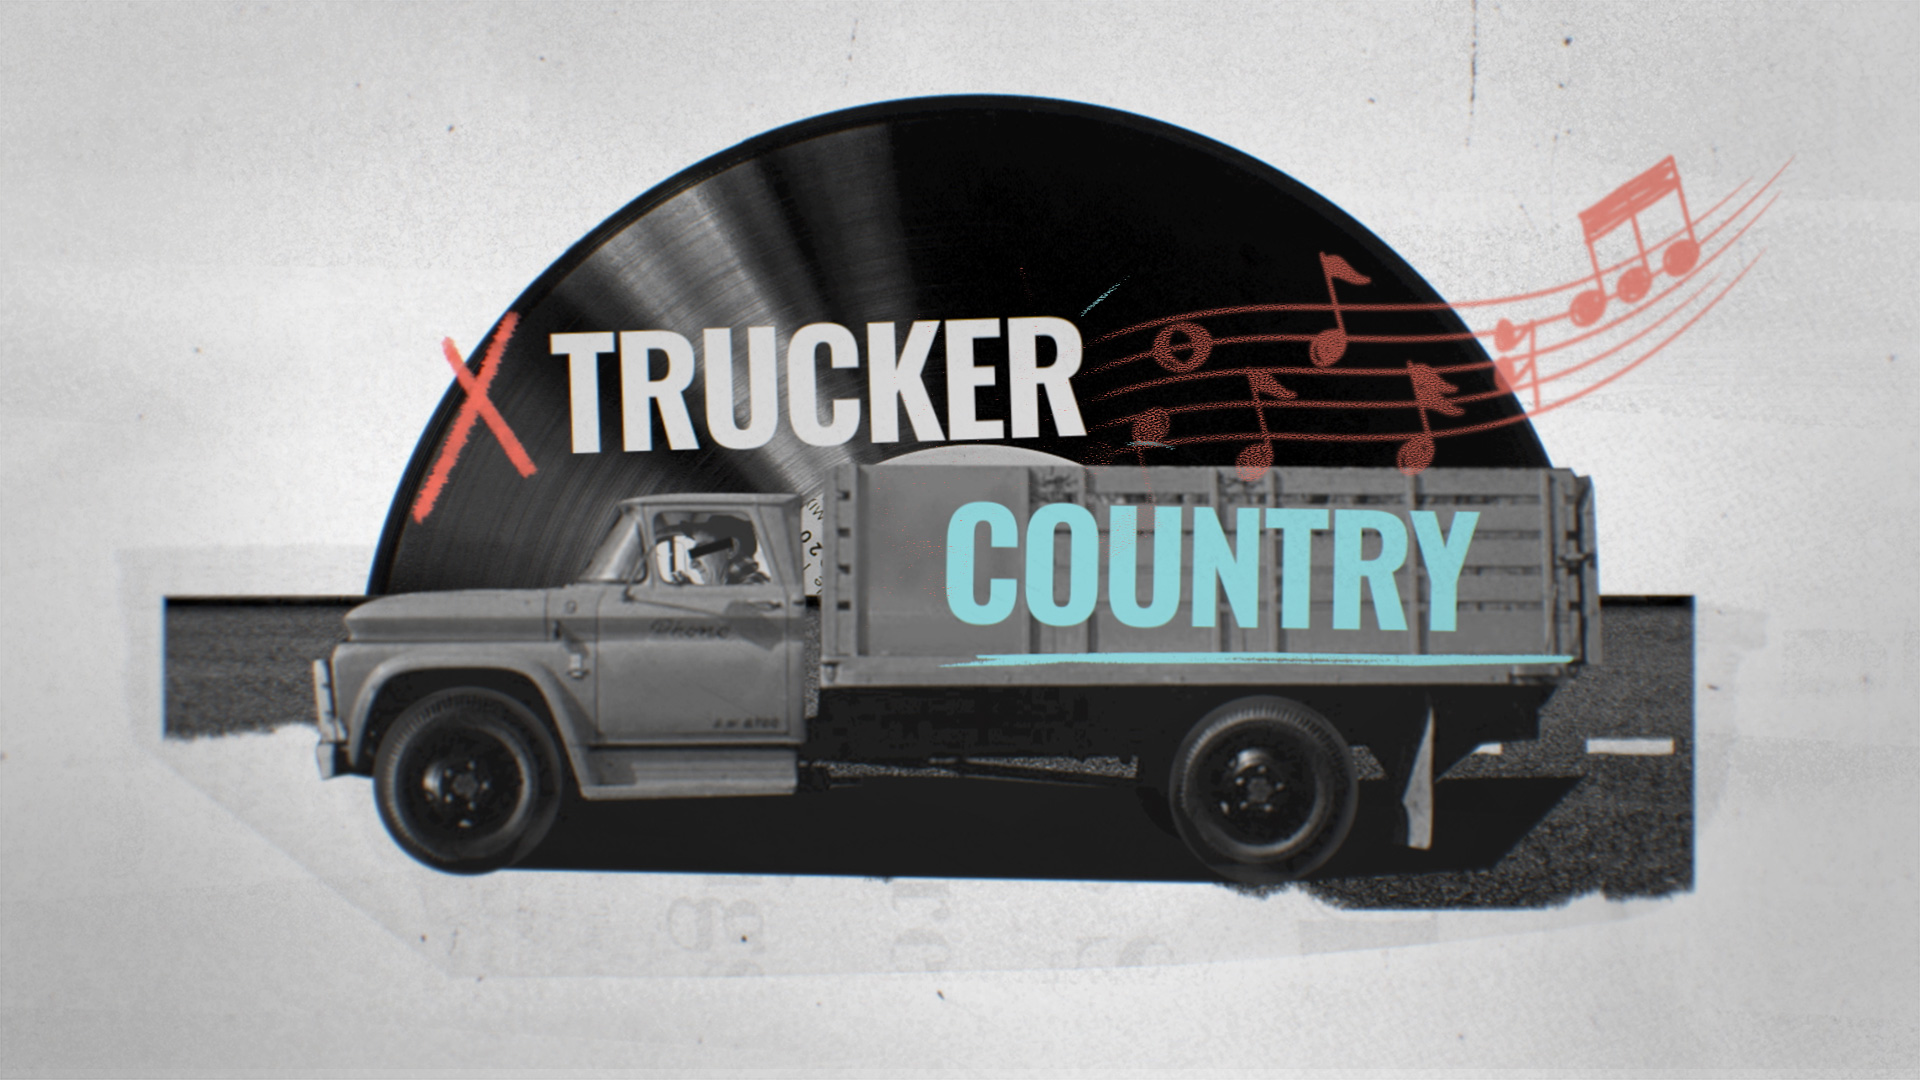 Truck driver against a vinyl record spinning backdrop